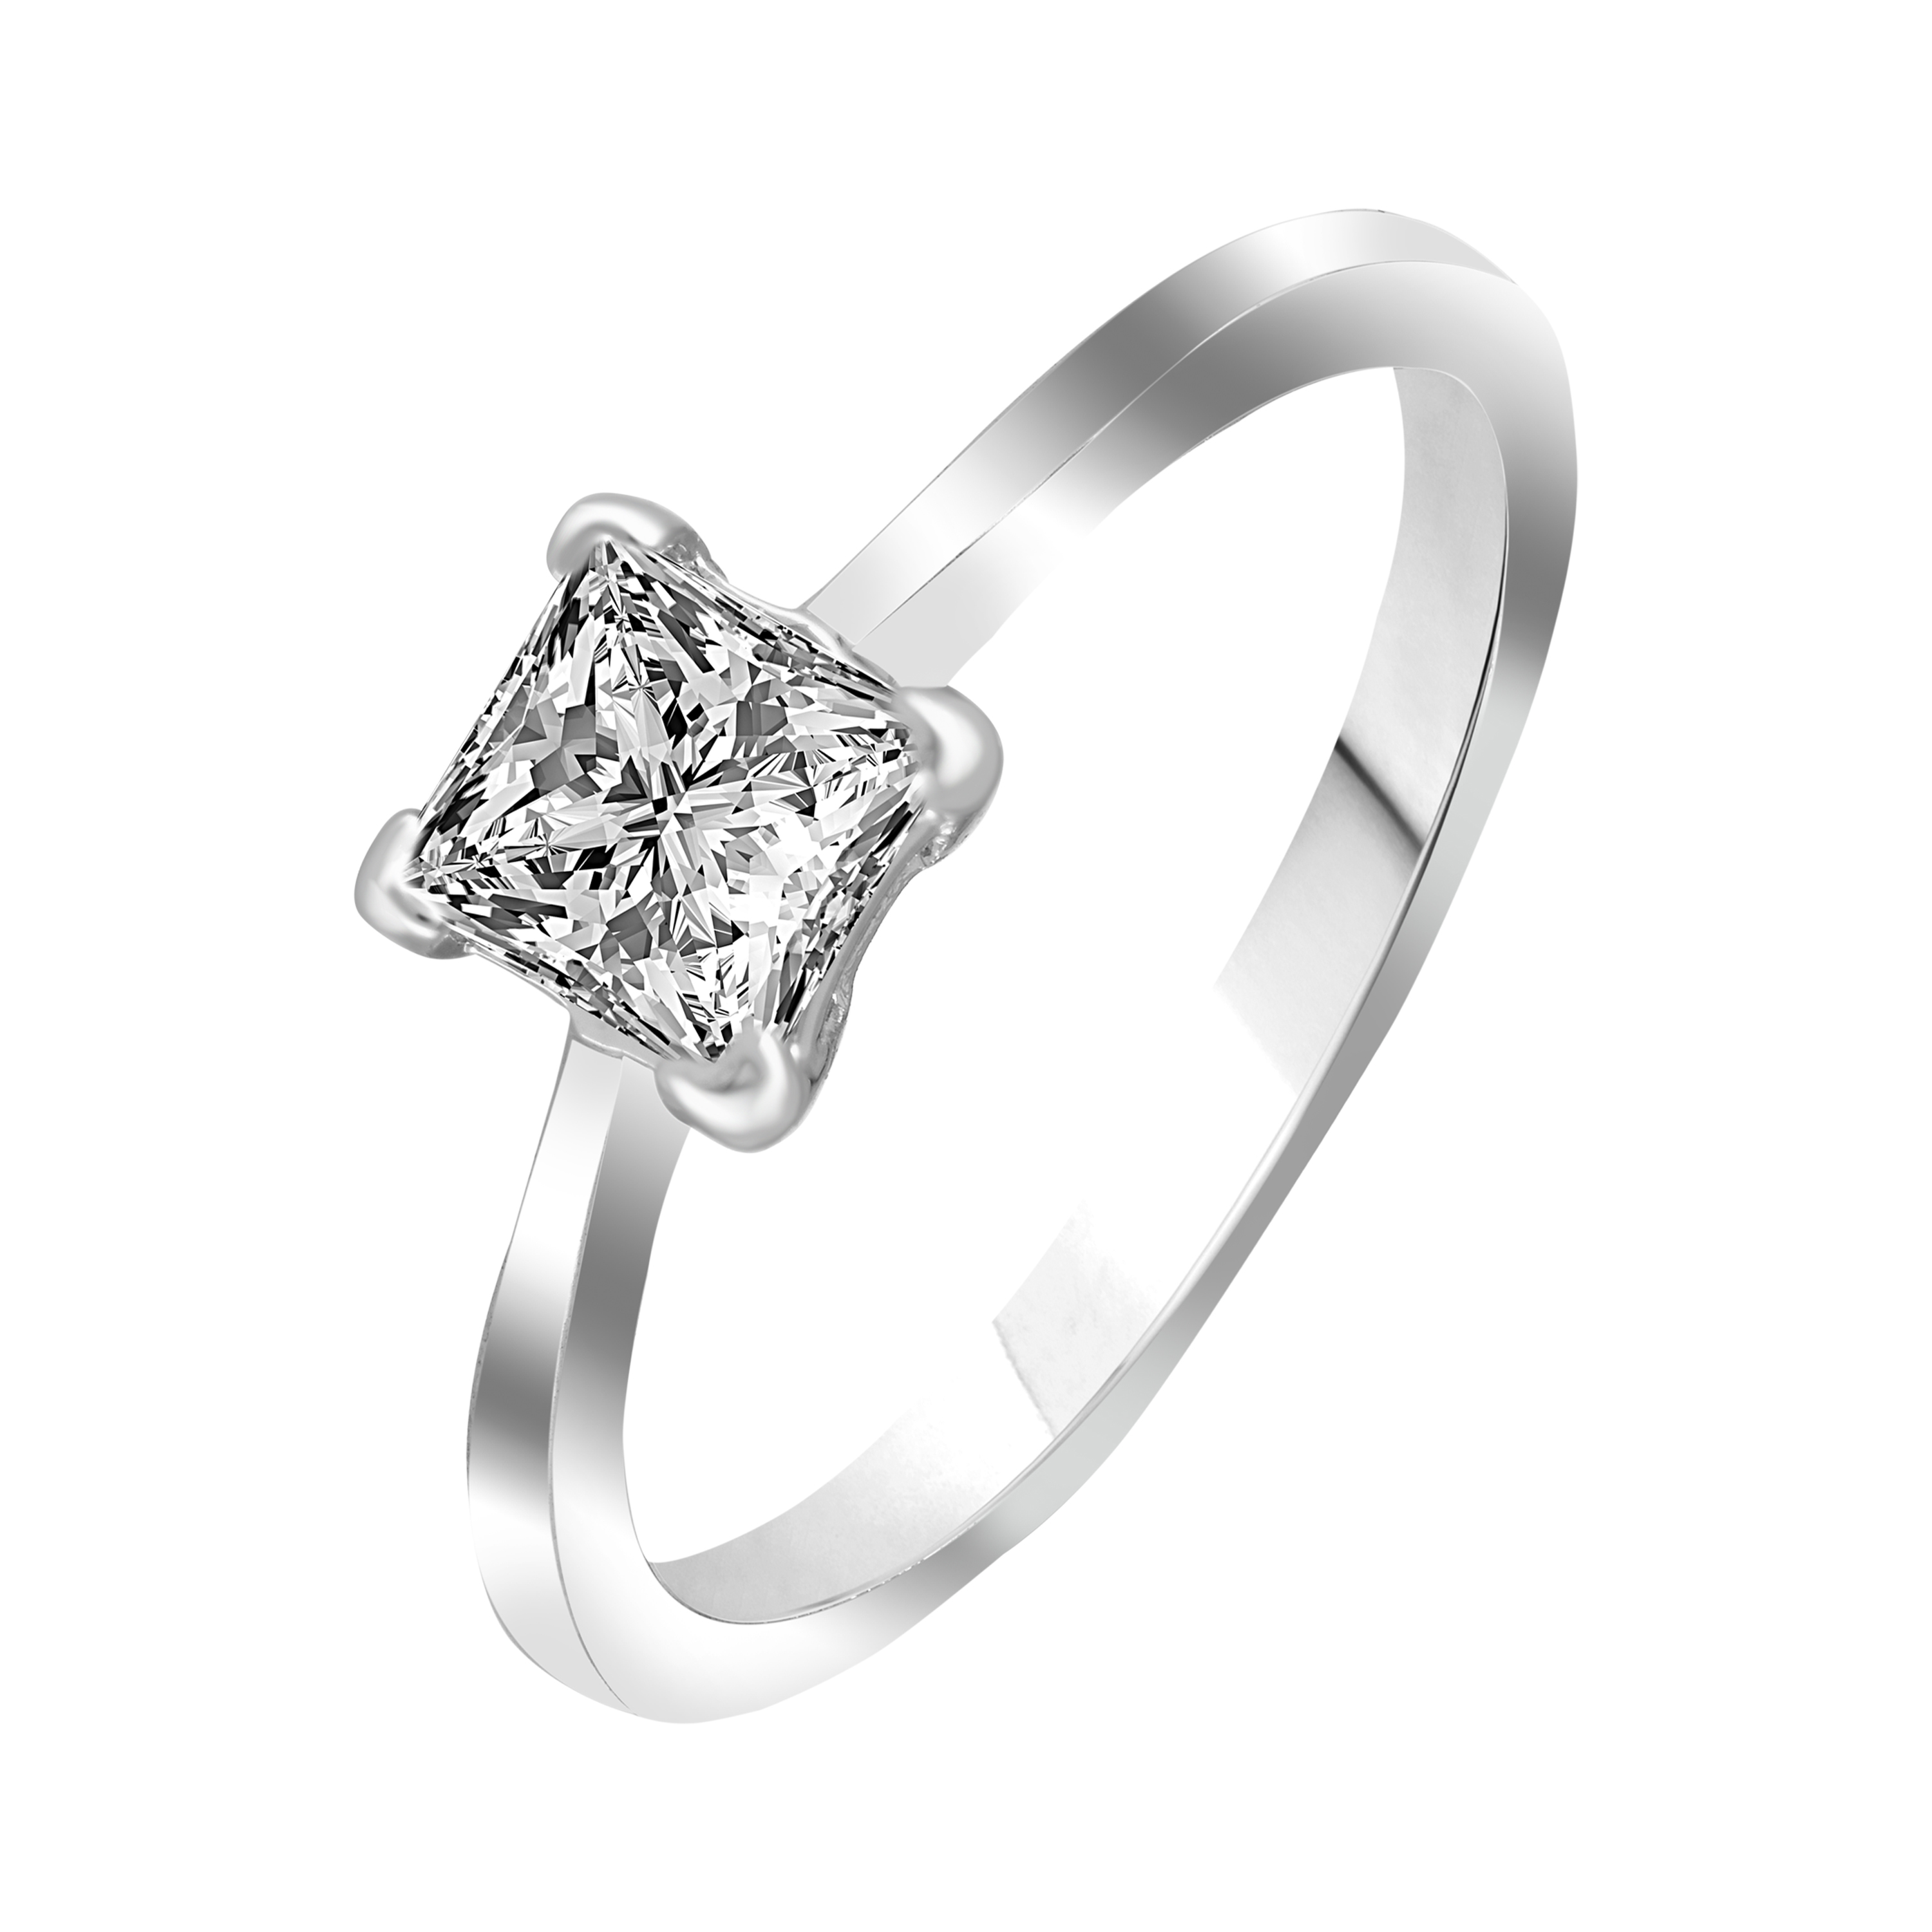 VK Jewels Square Solitaire Rhodium Plated Alloy CZ American Diamond Ring for Women [VKFR2812R8]